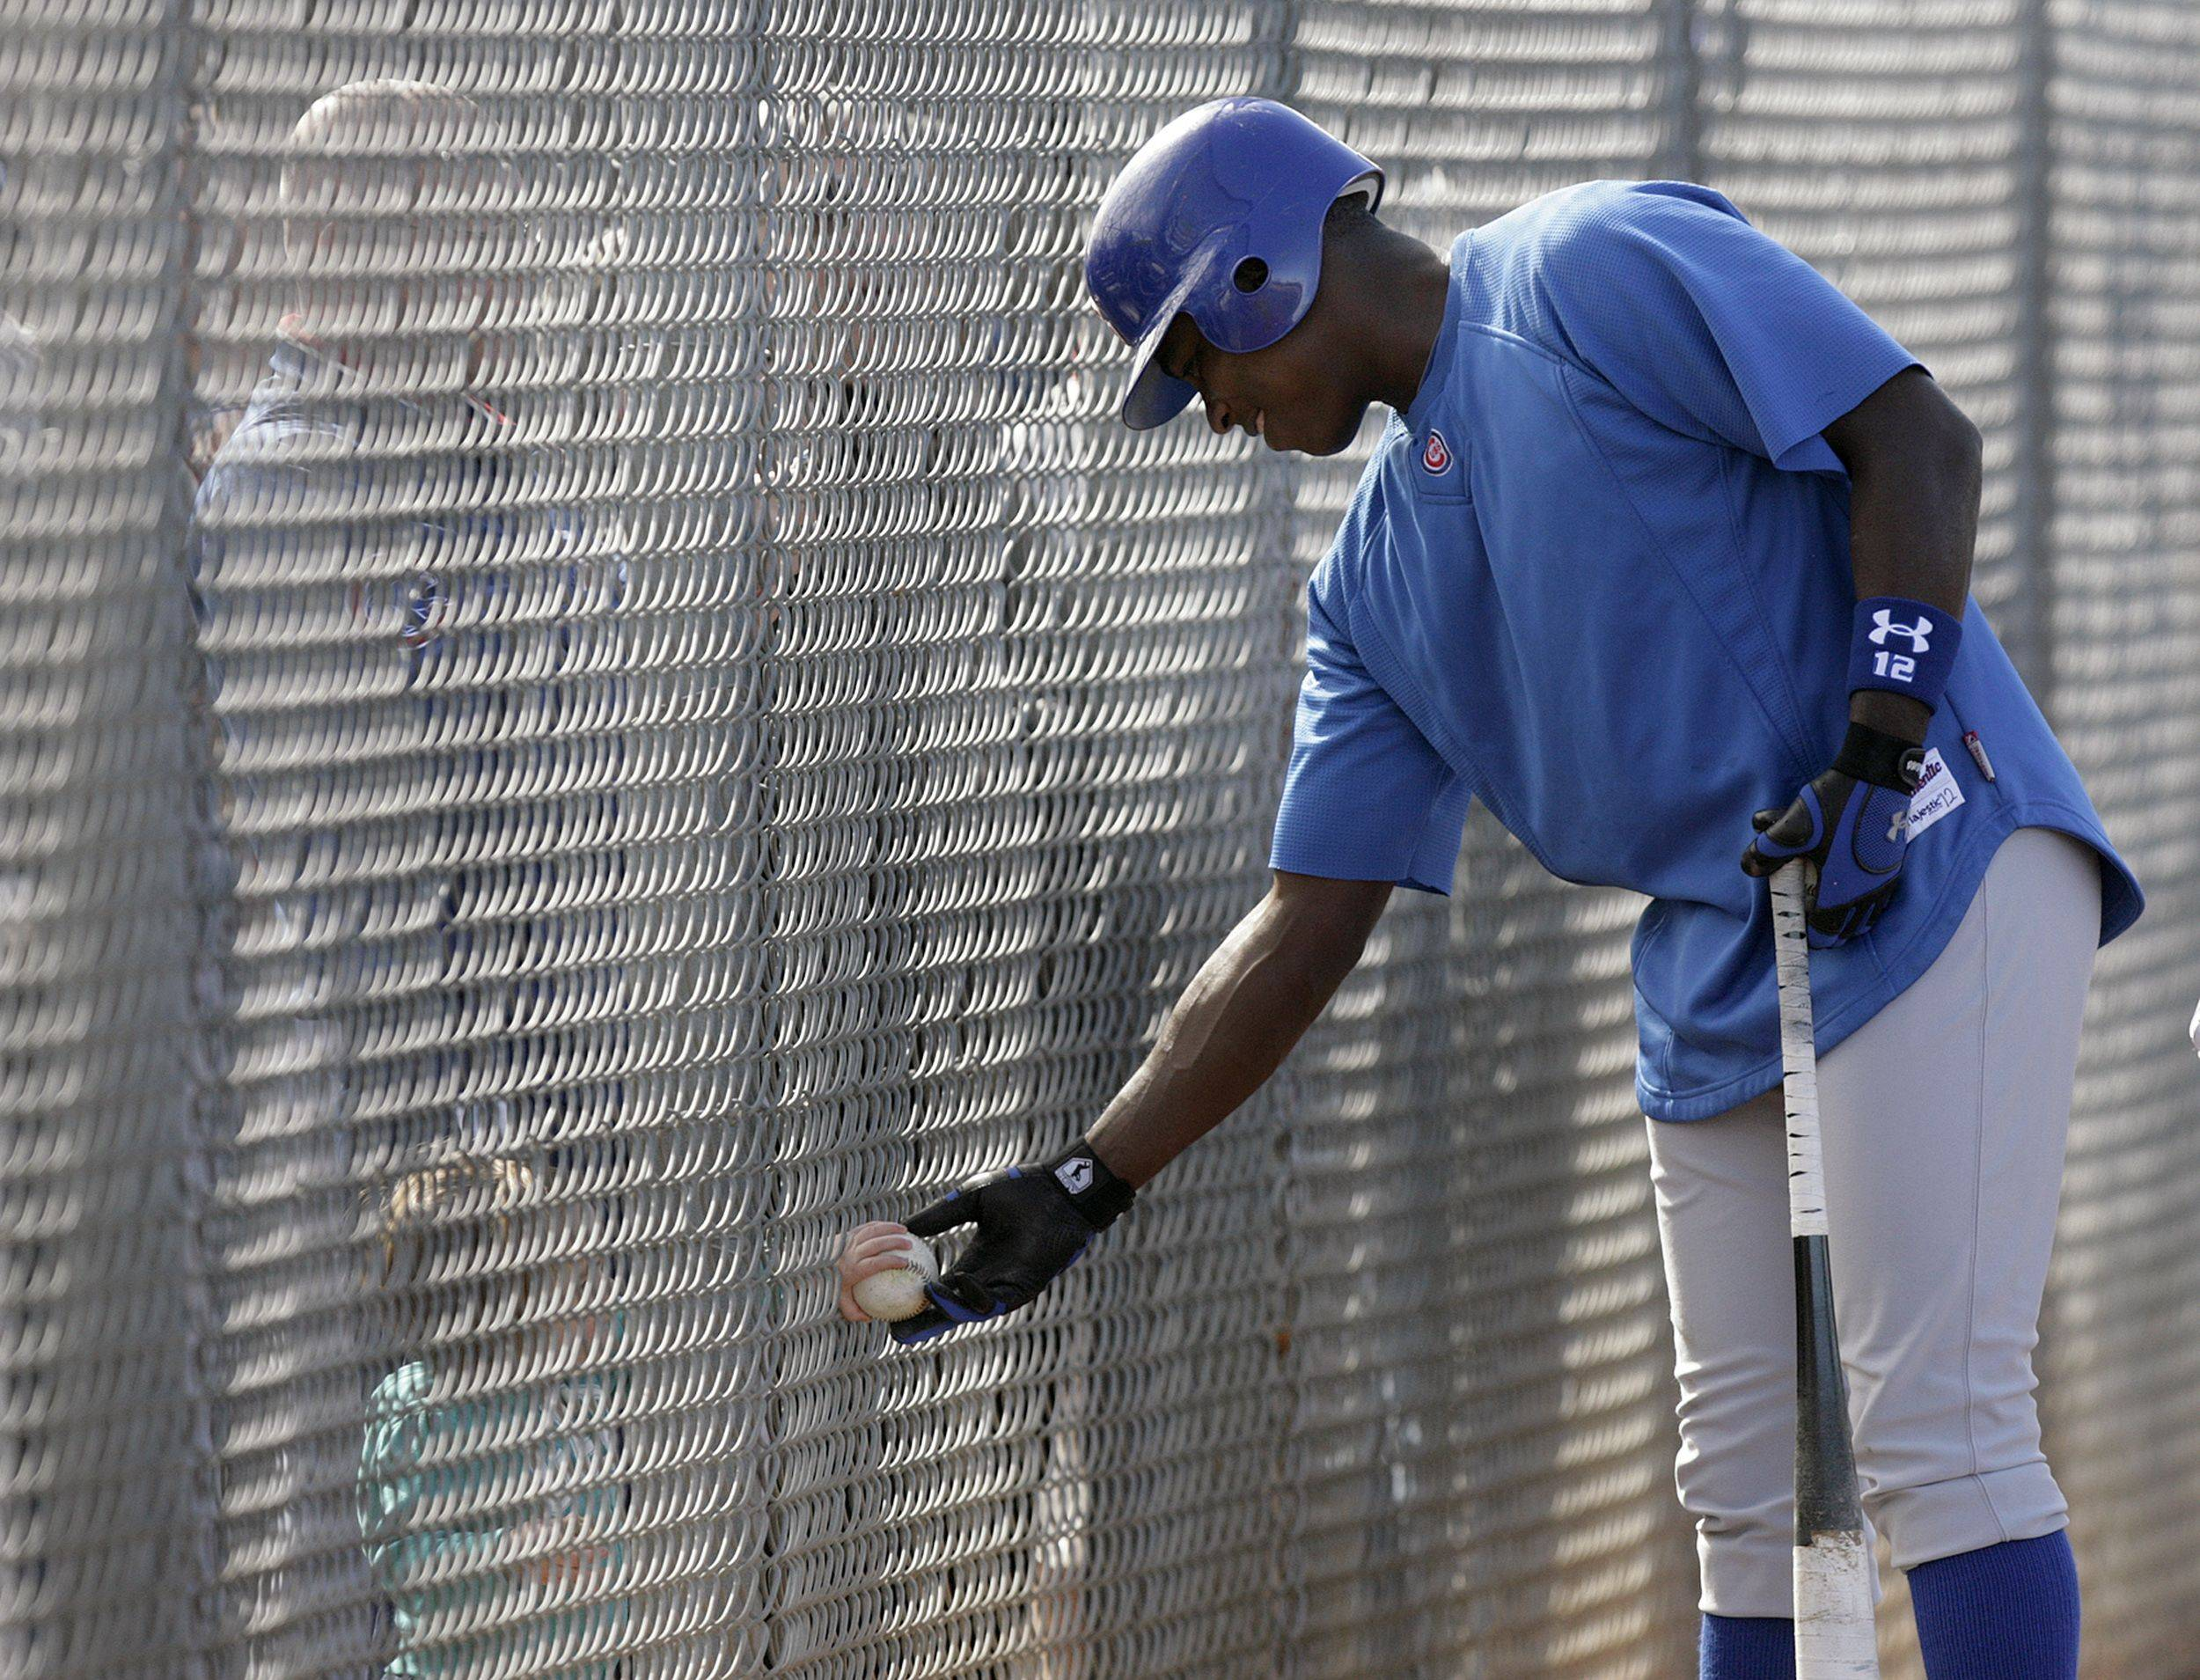 Chicago Cubs outfielder Alfonso Soriano passes a baseball through a fence to a young fan as he prepares to take batting practice during spring training Monday, Feb. 21, 2011, in Mesa, Ariz.